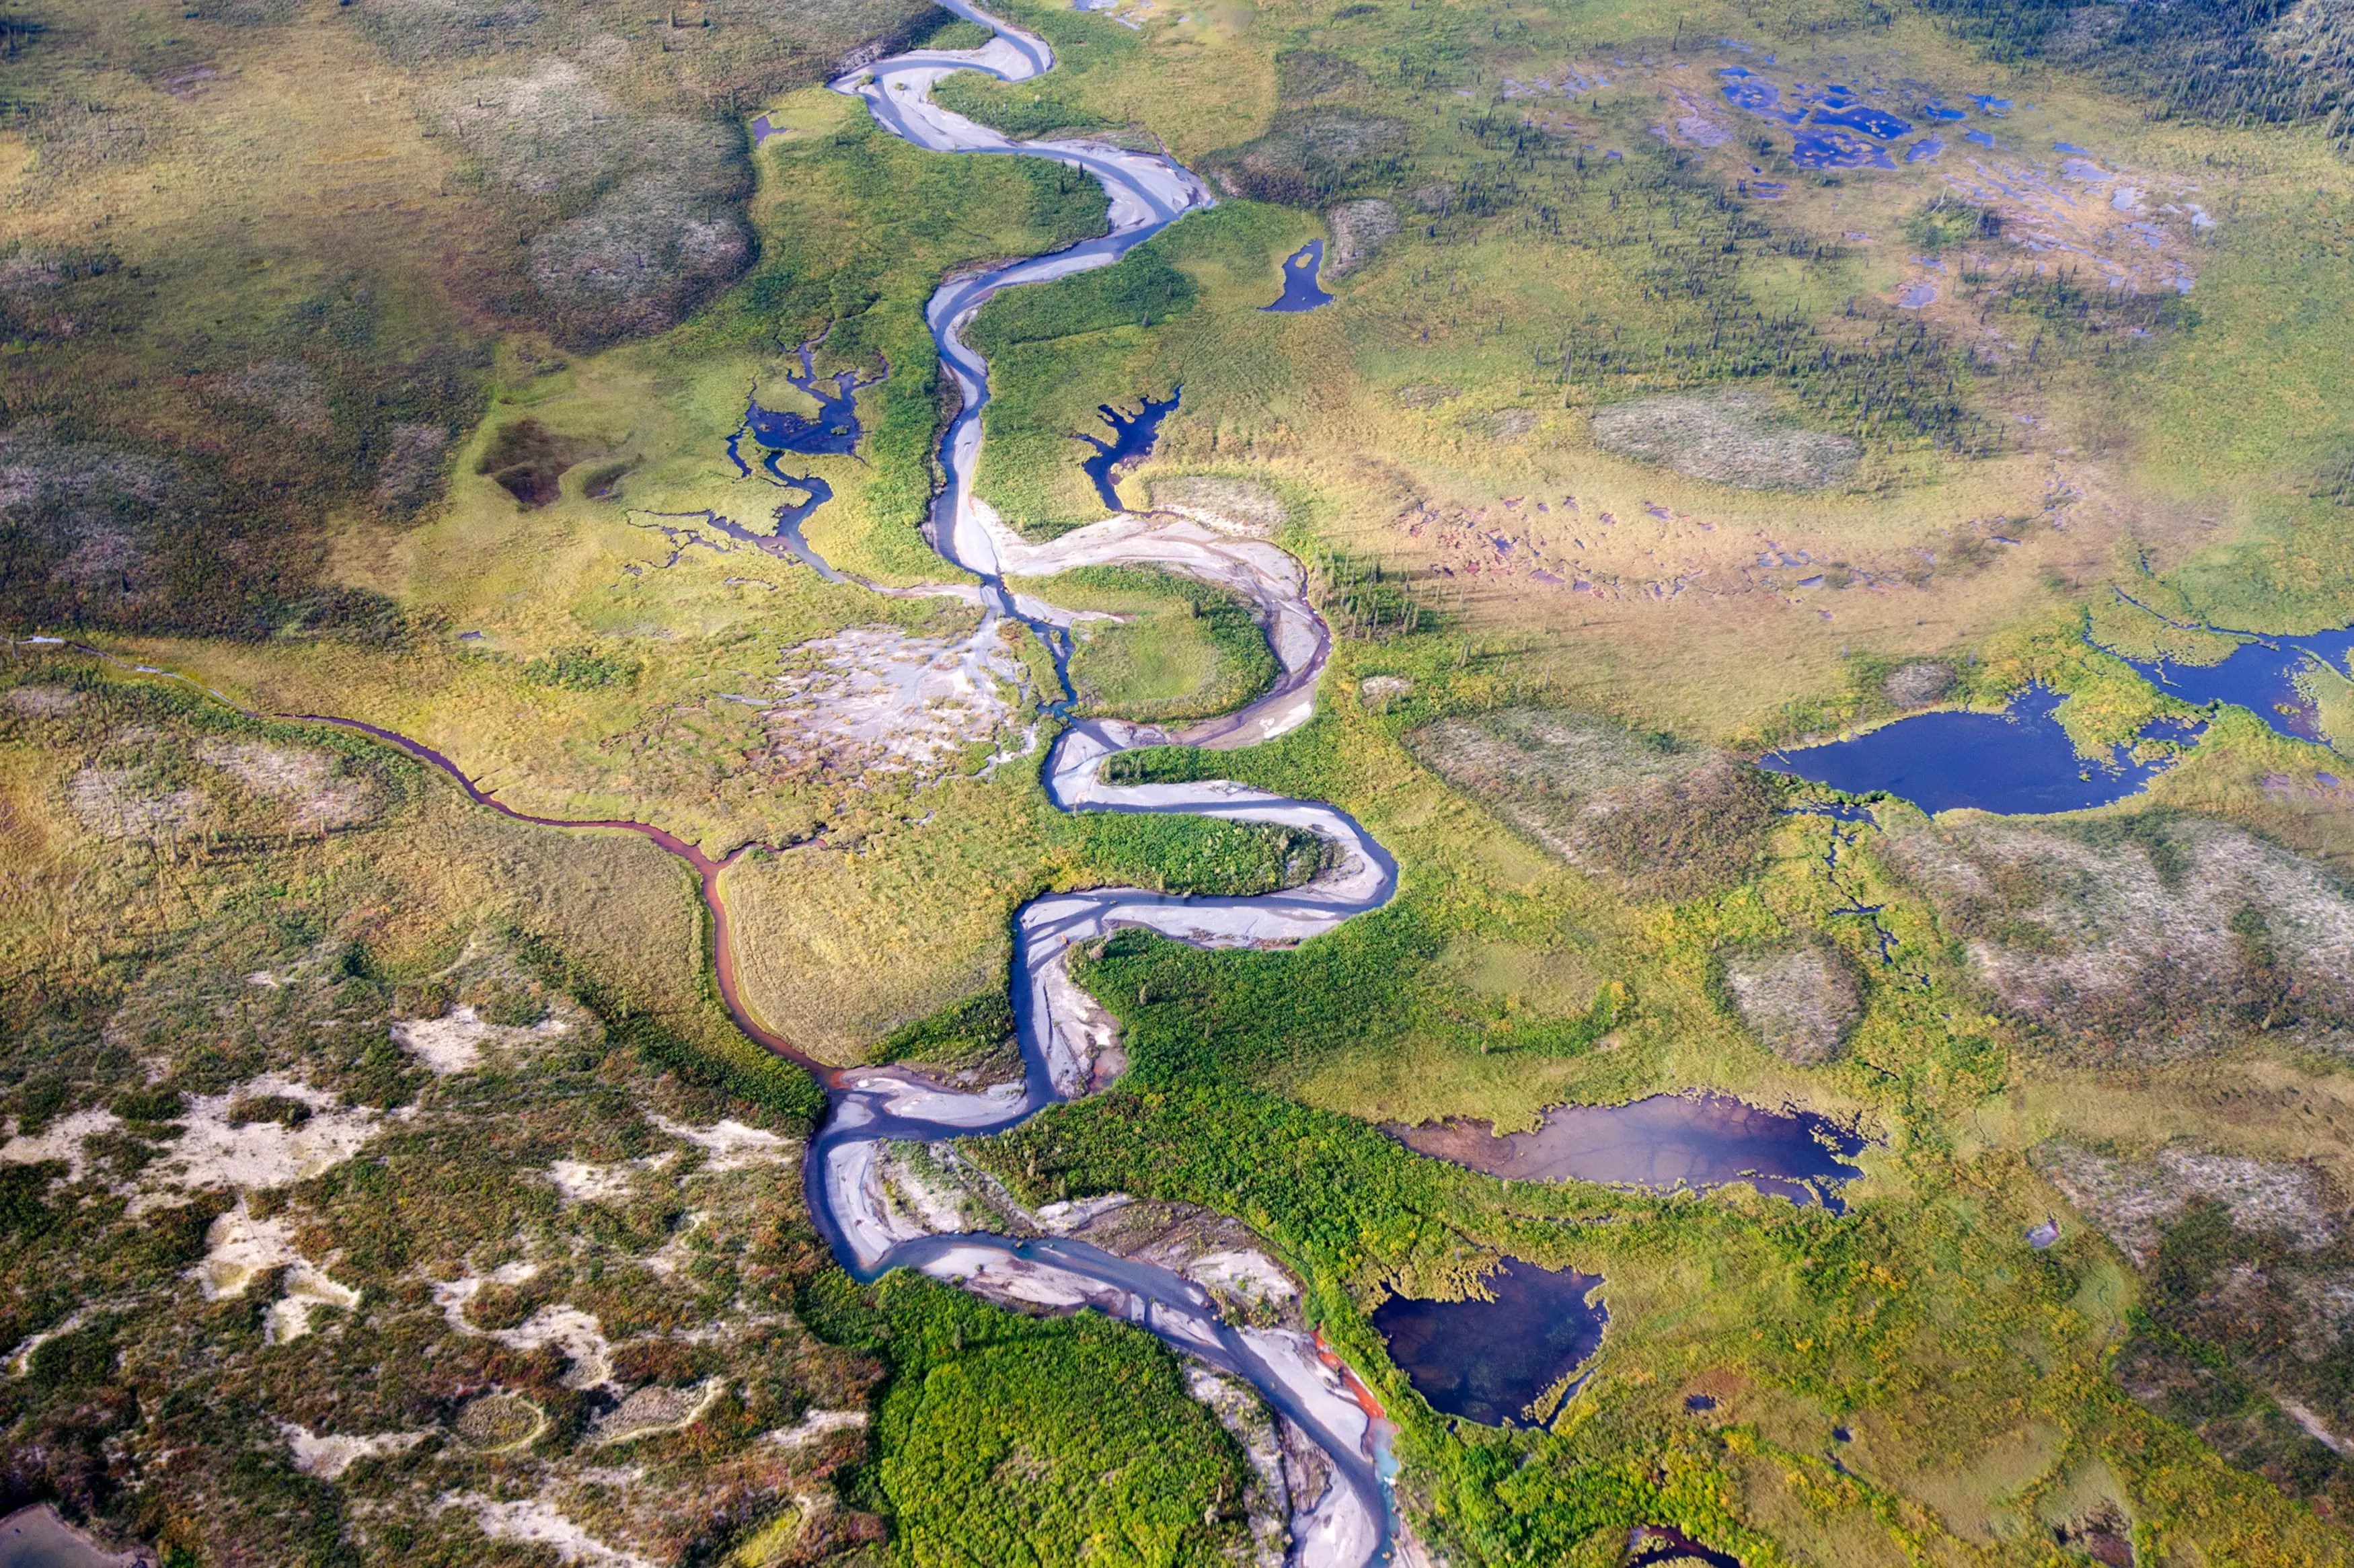 A river runs through a valley near Moose Pond in Canada's Northwest Territories.